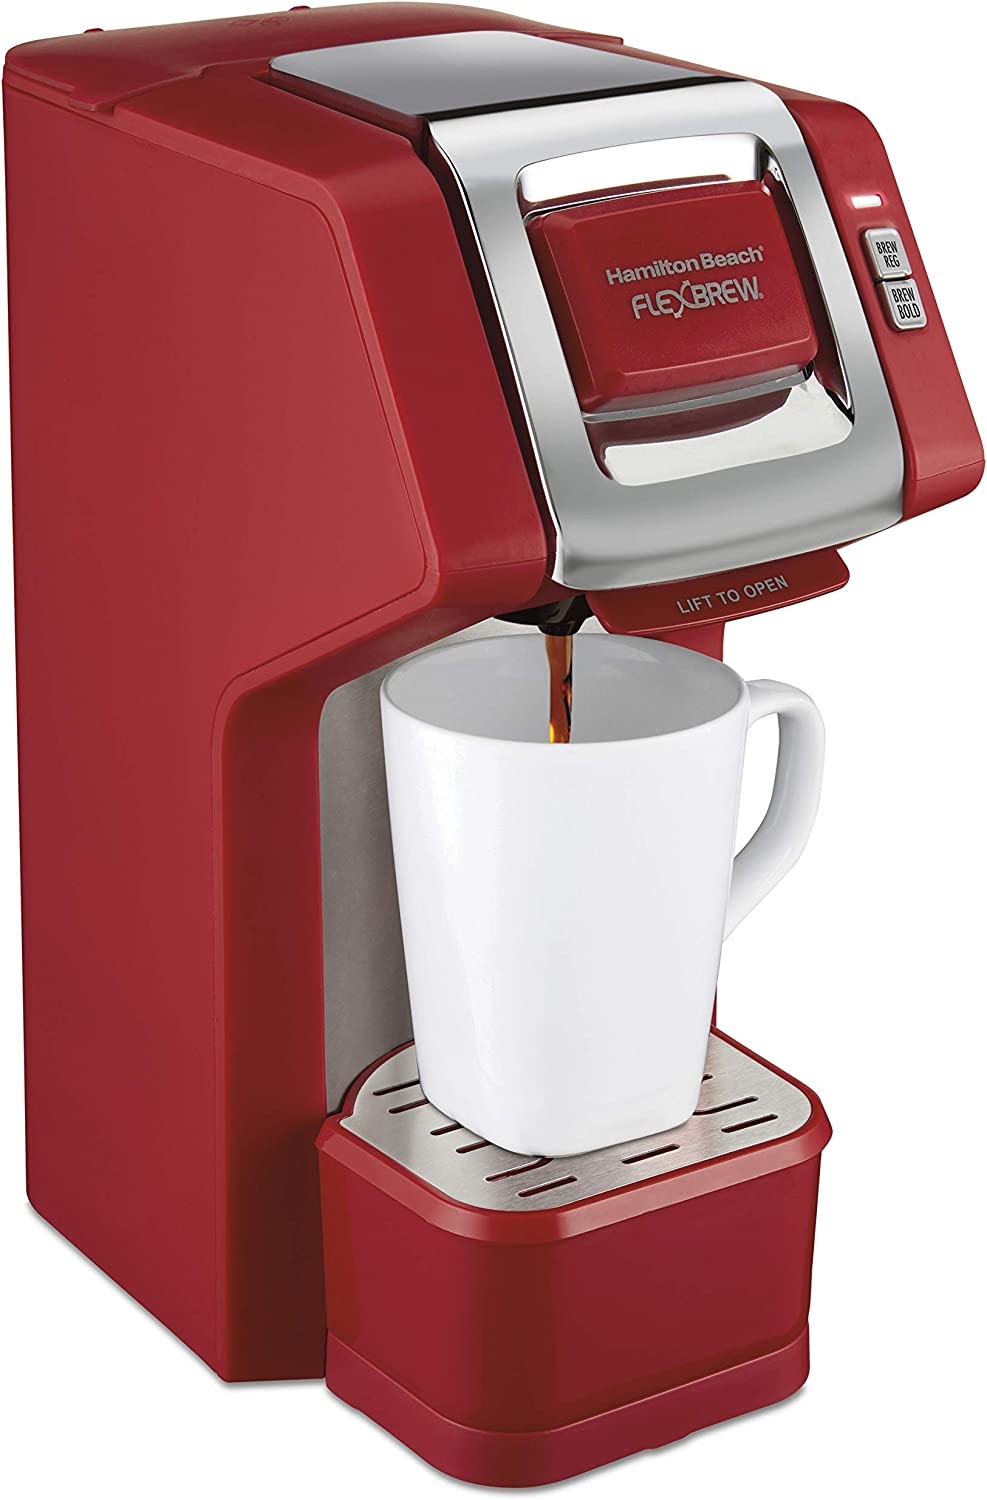 Hamilton Beach Single Serve Coffee Maker Compatible with K-Cup Pods or Grounds, Flexbrew with Adjustable Brew Strength, Red (49945)